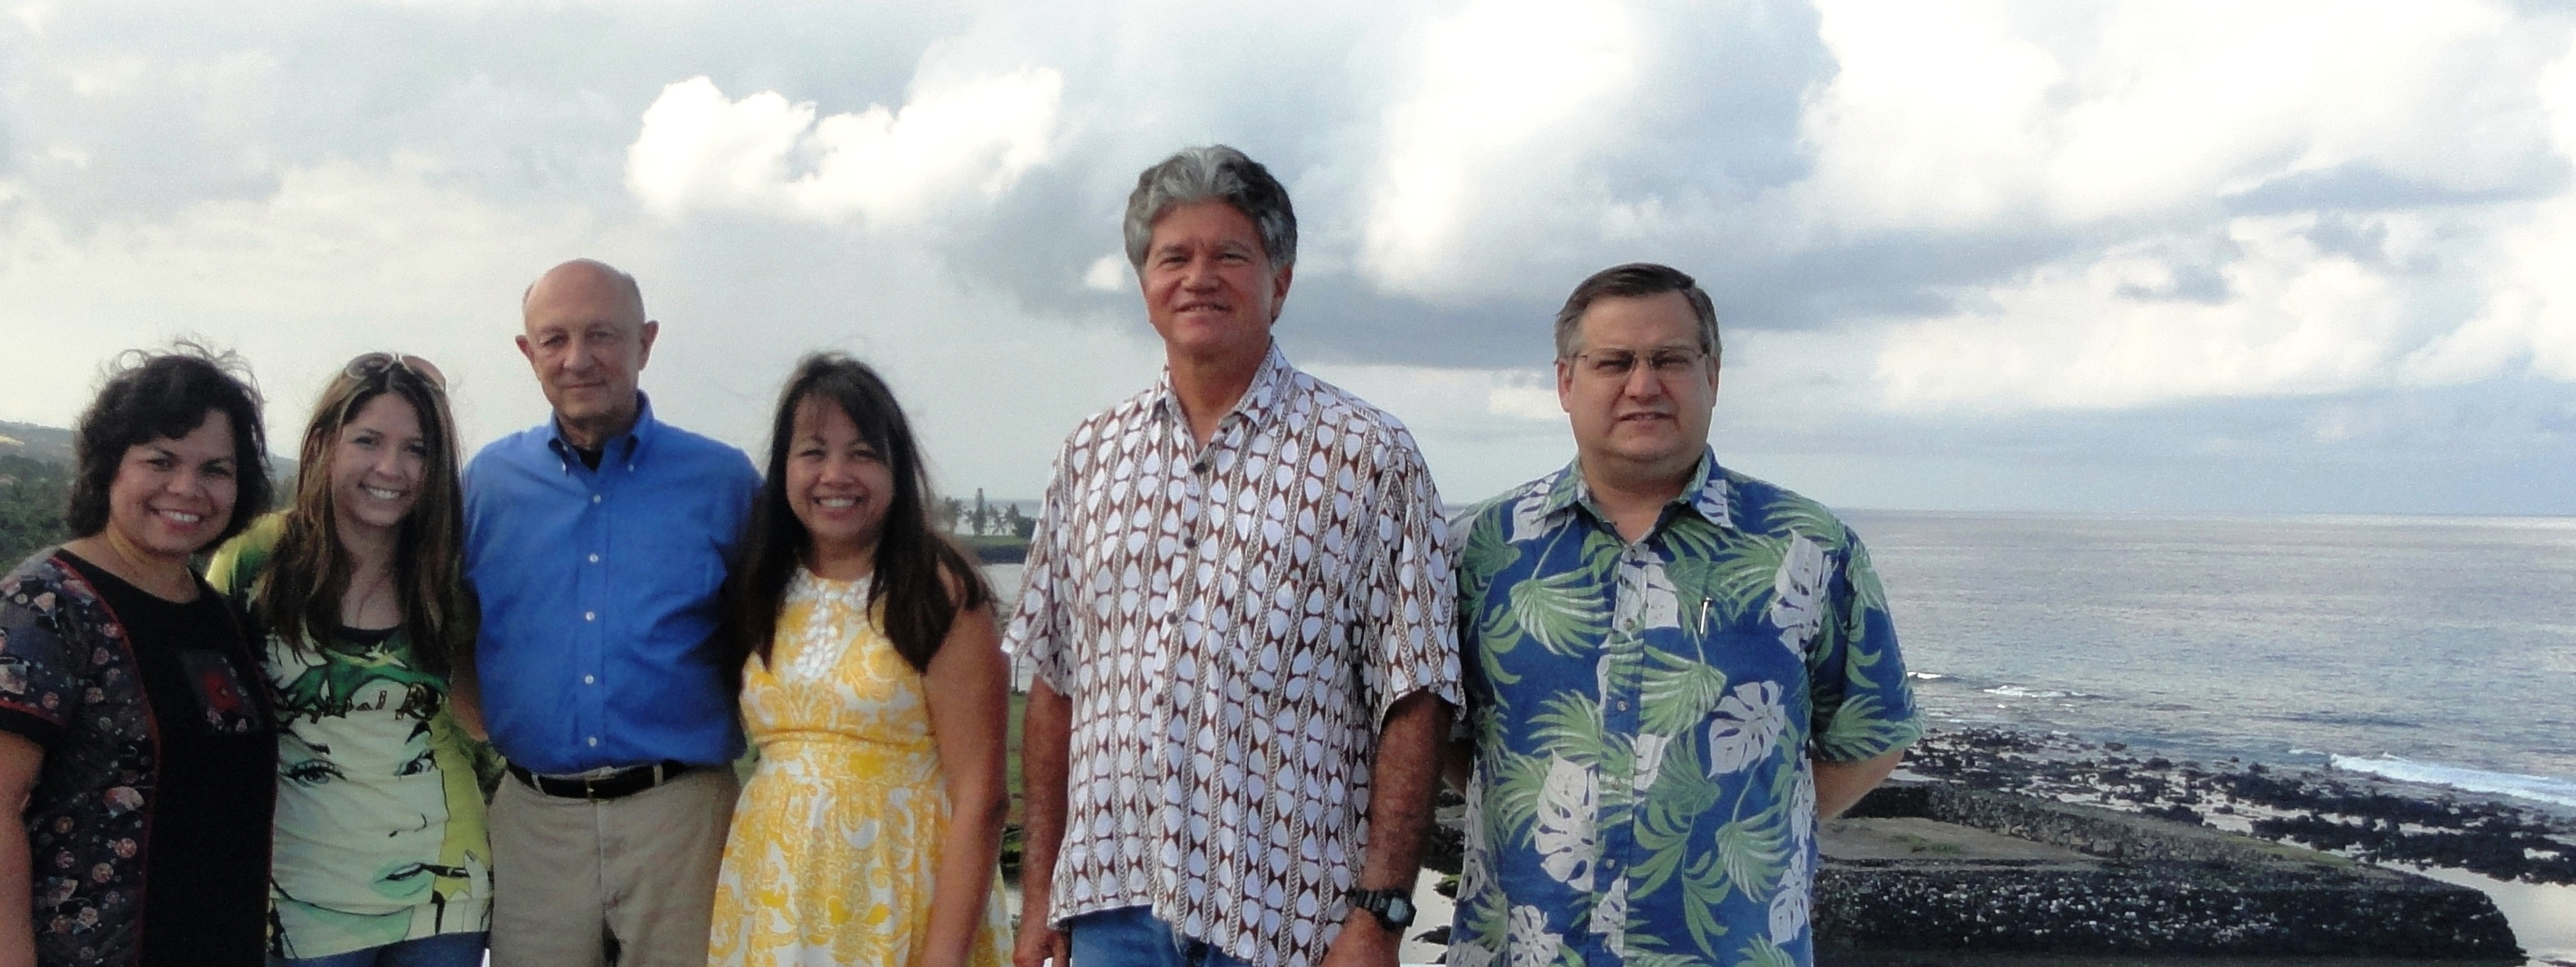 Cropped group on roof with heiau